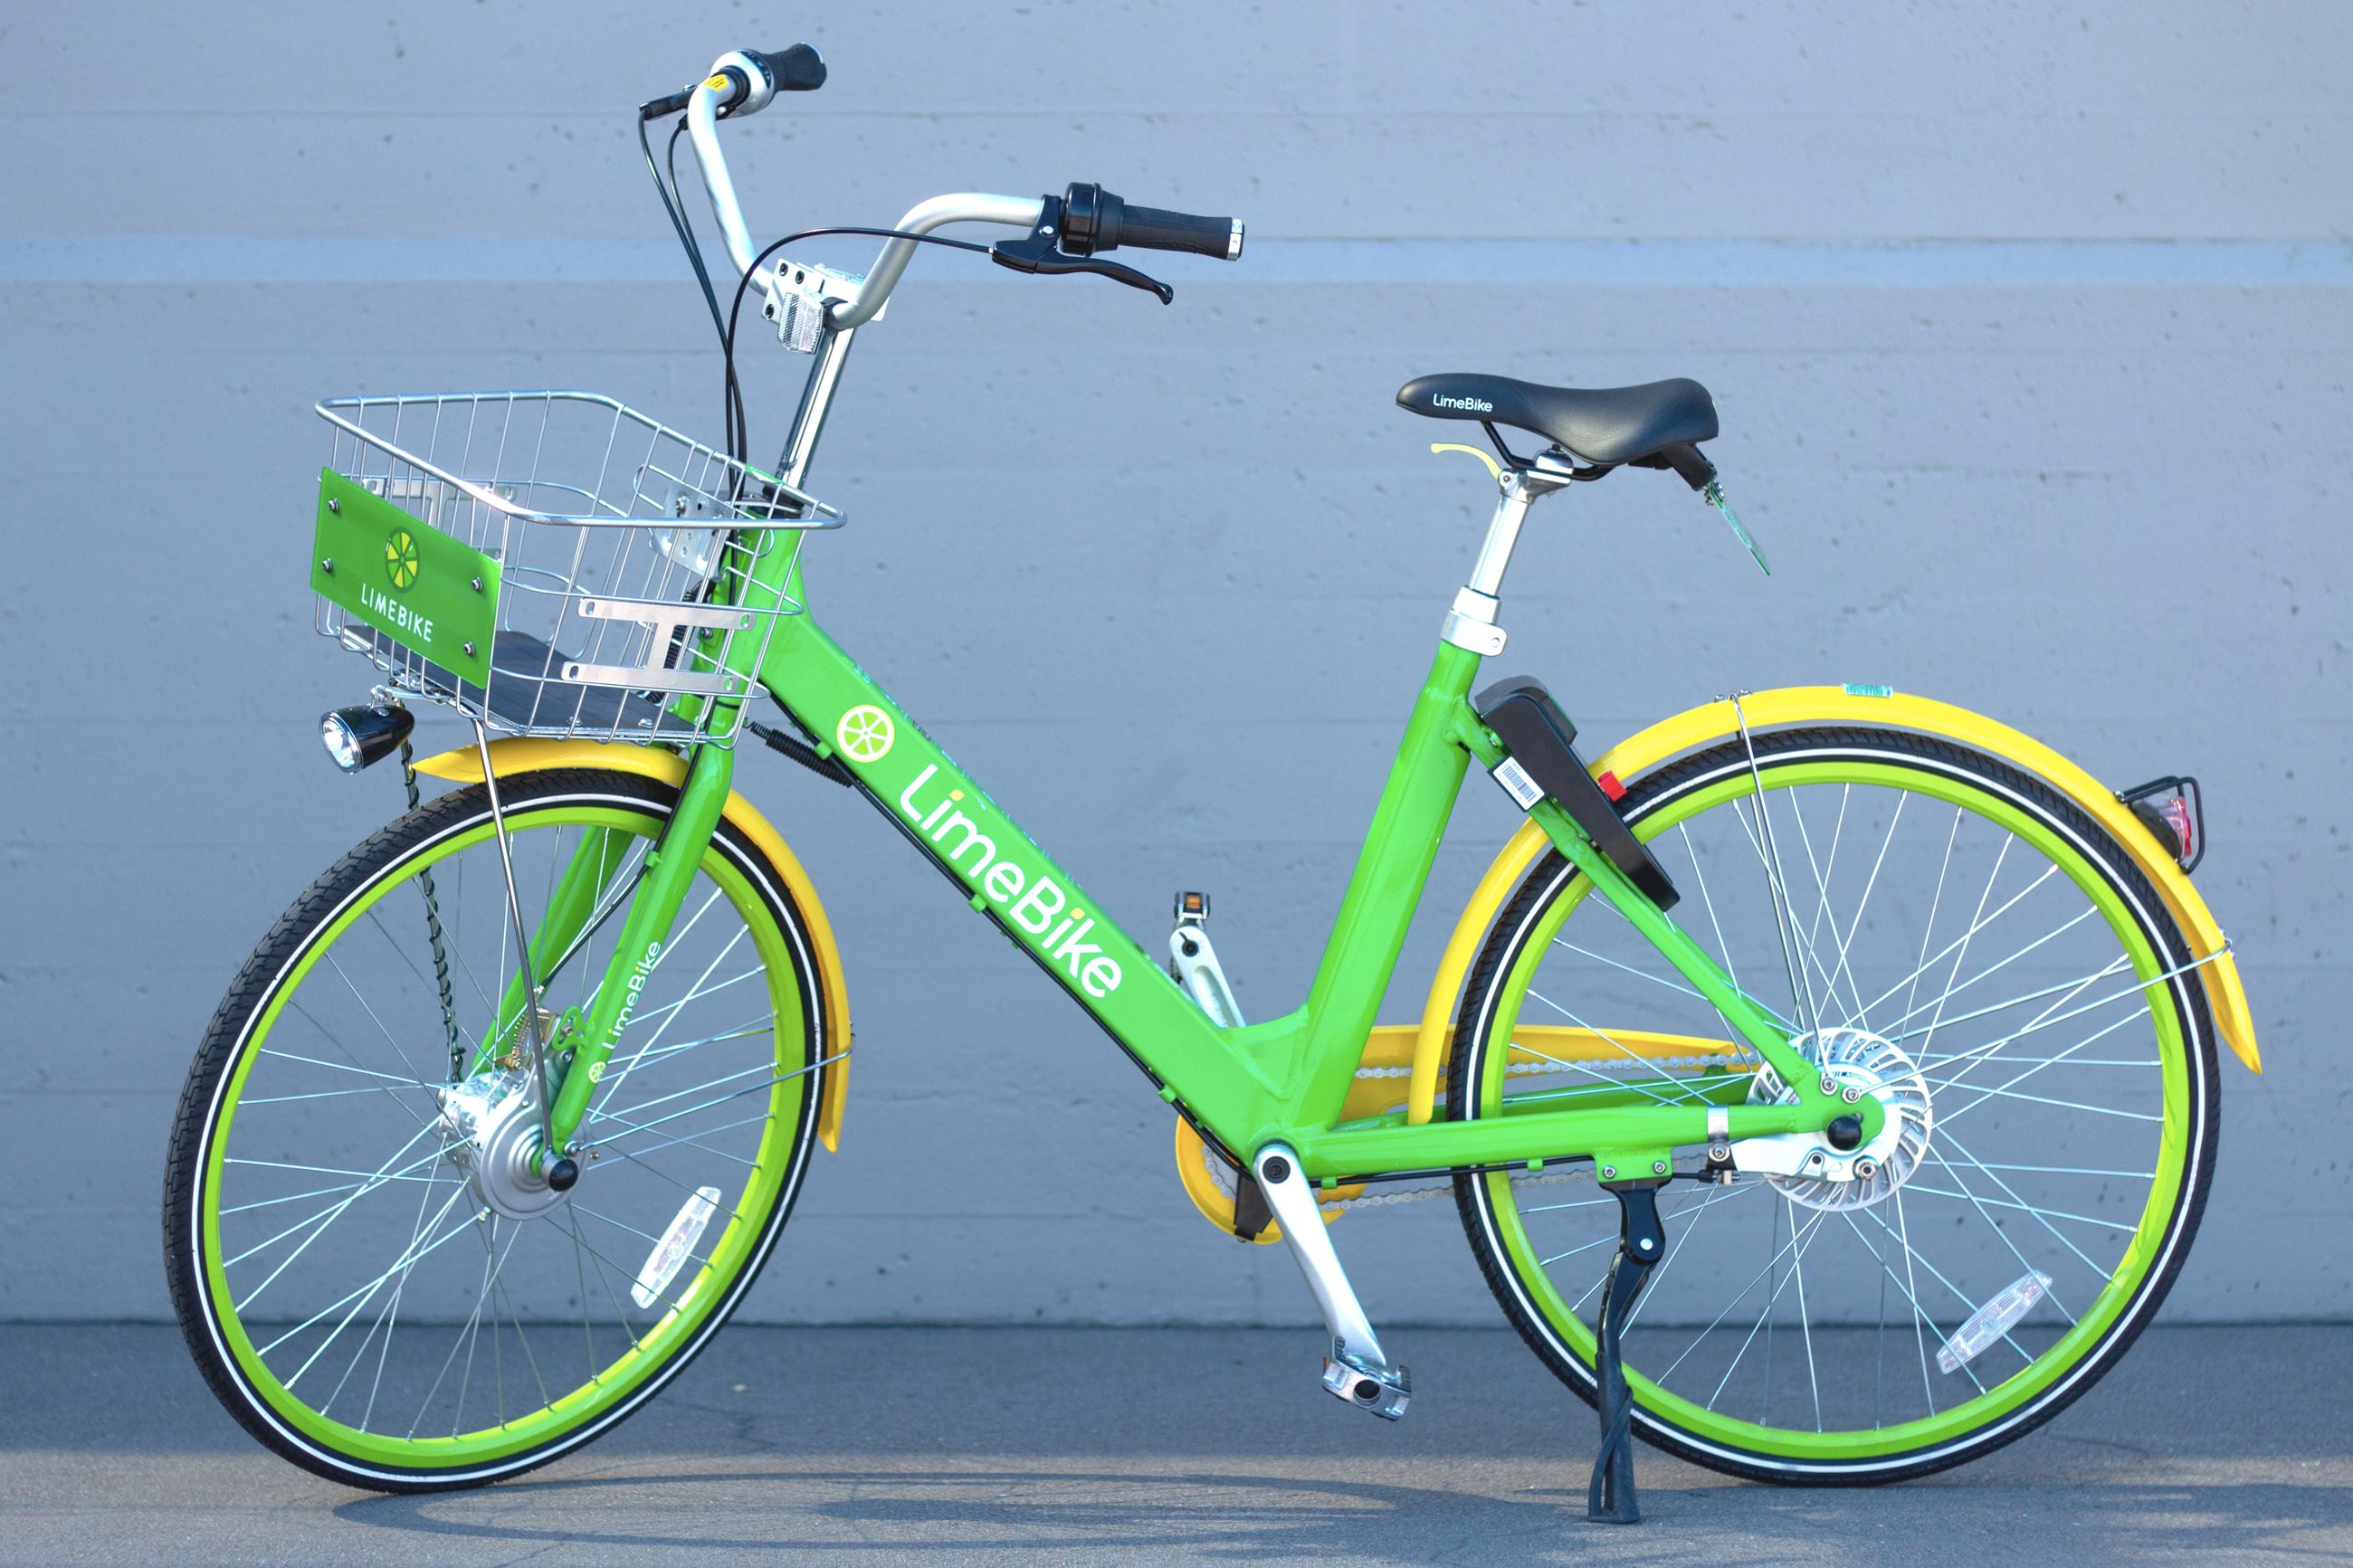 54da102b04c Bike Share Program | El Cerrito, CA - Official Website